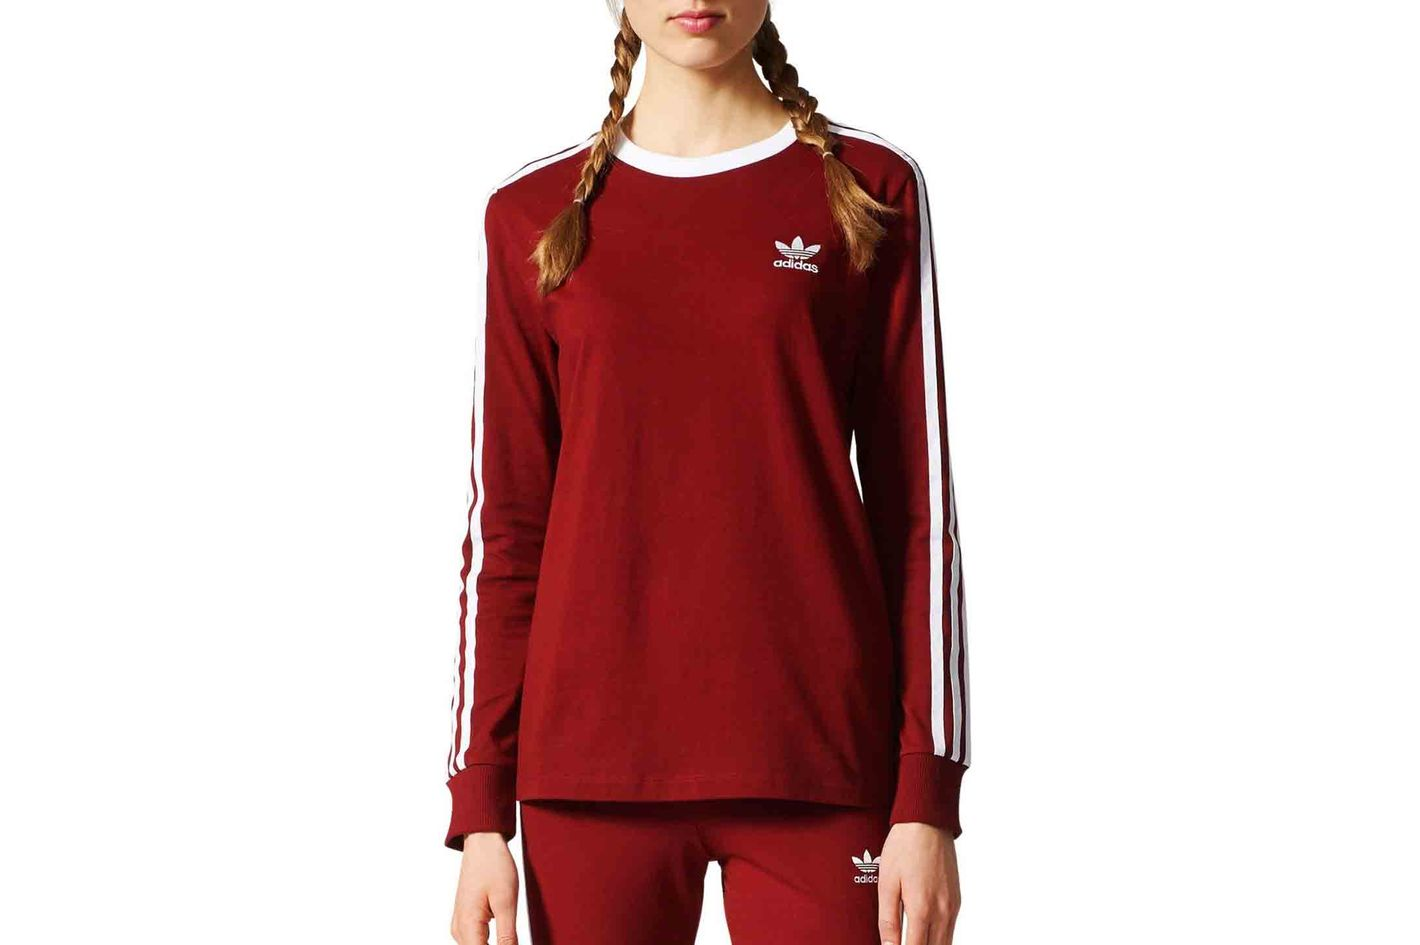 Adidas Three Stripes Long-Sleeve Tee